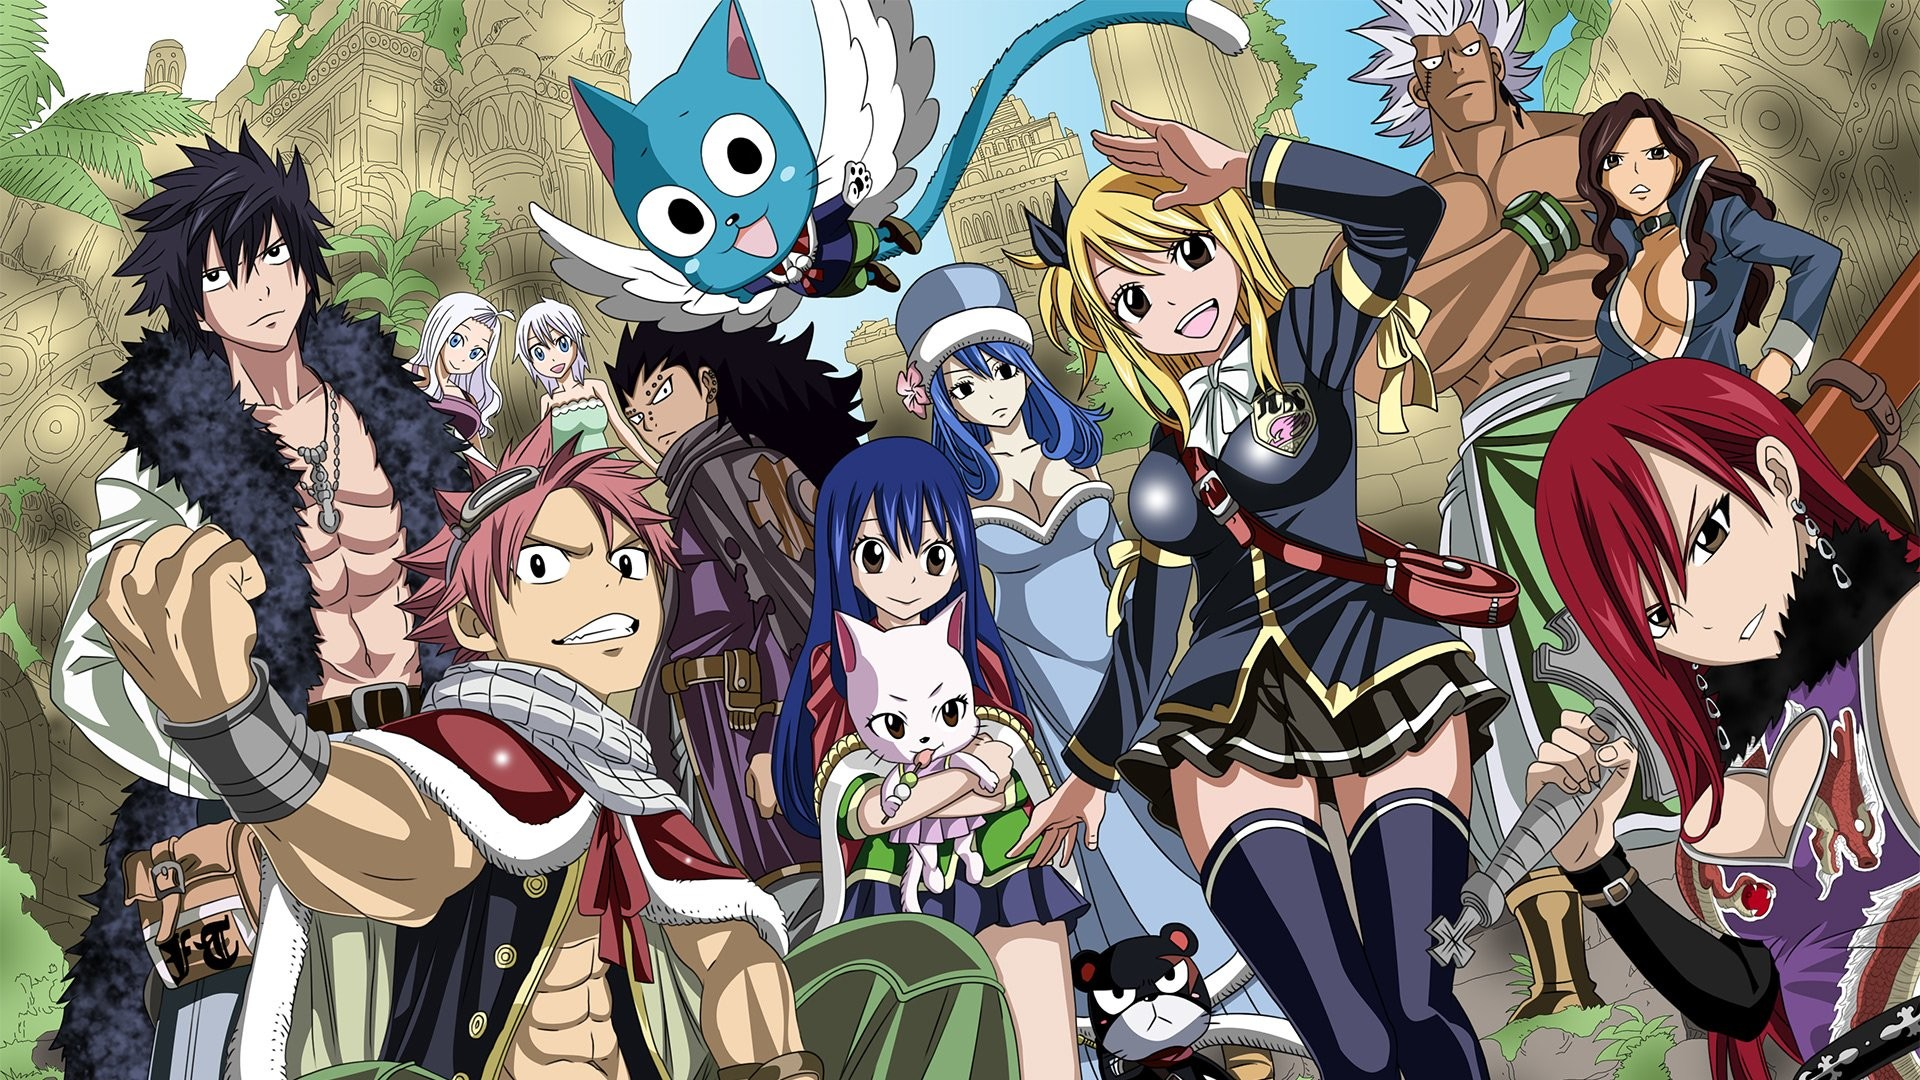 Fairy Tail 2018 Wallpaper Hd 82 Pictures